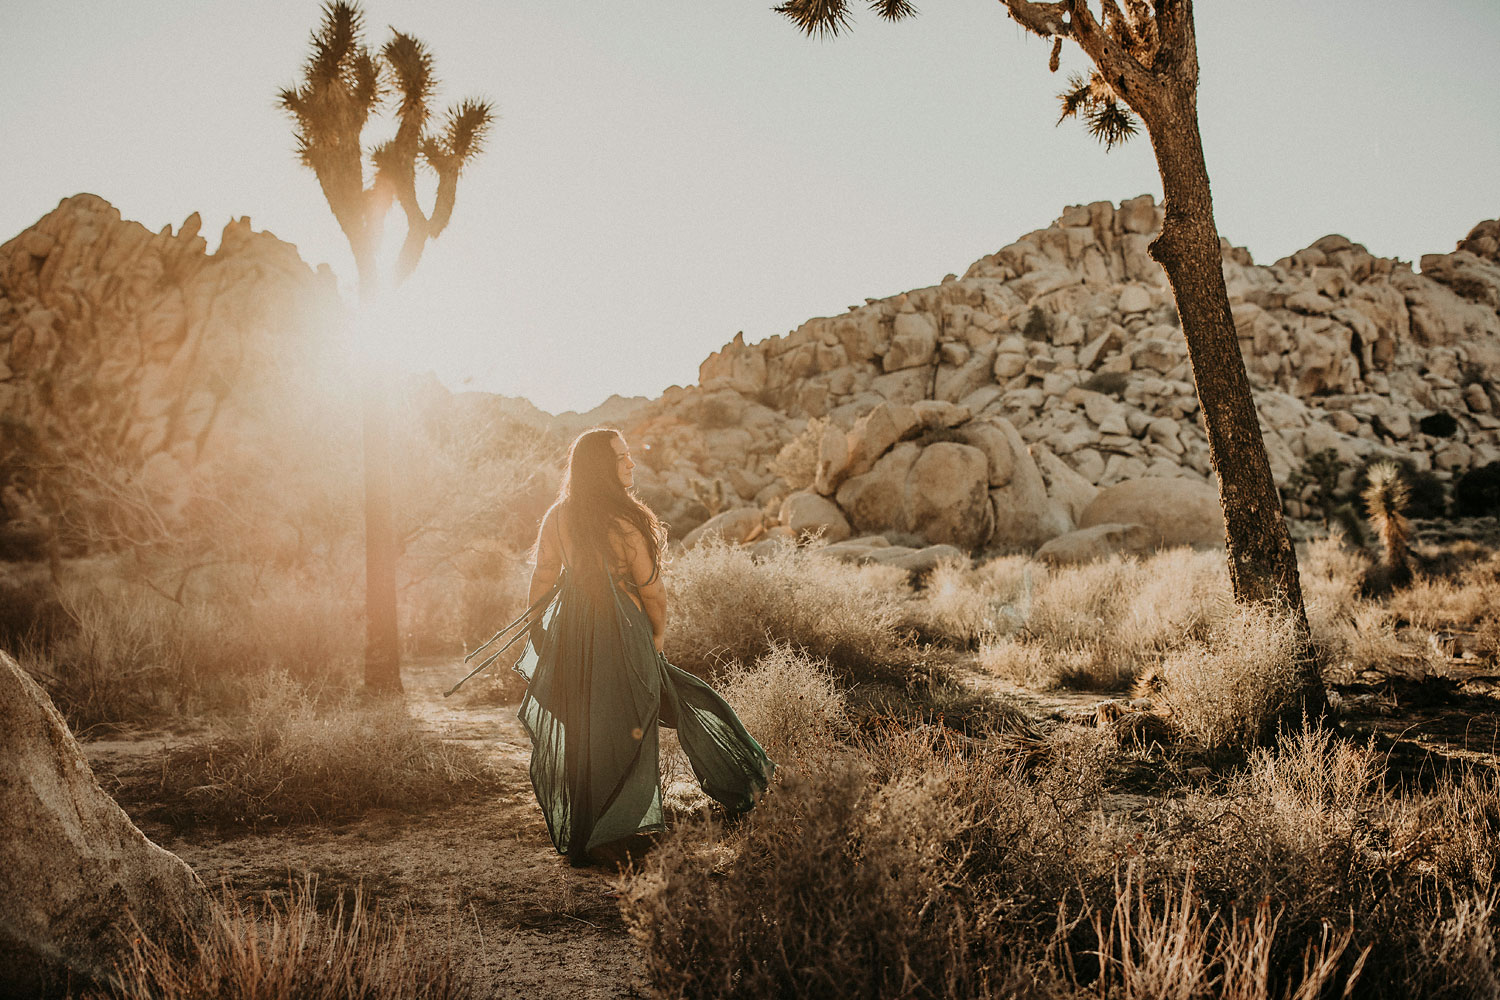 EXPLORING JOSHUA TREE - PERSONAL TRAVELS